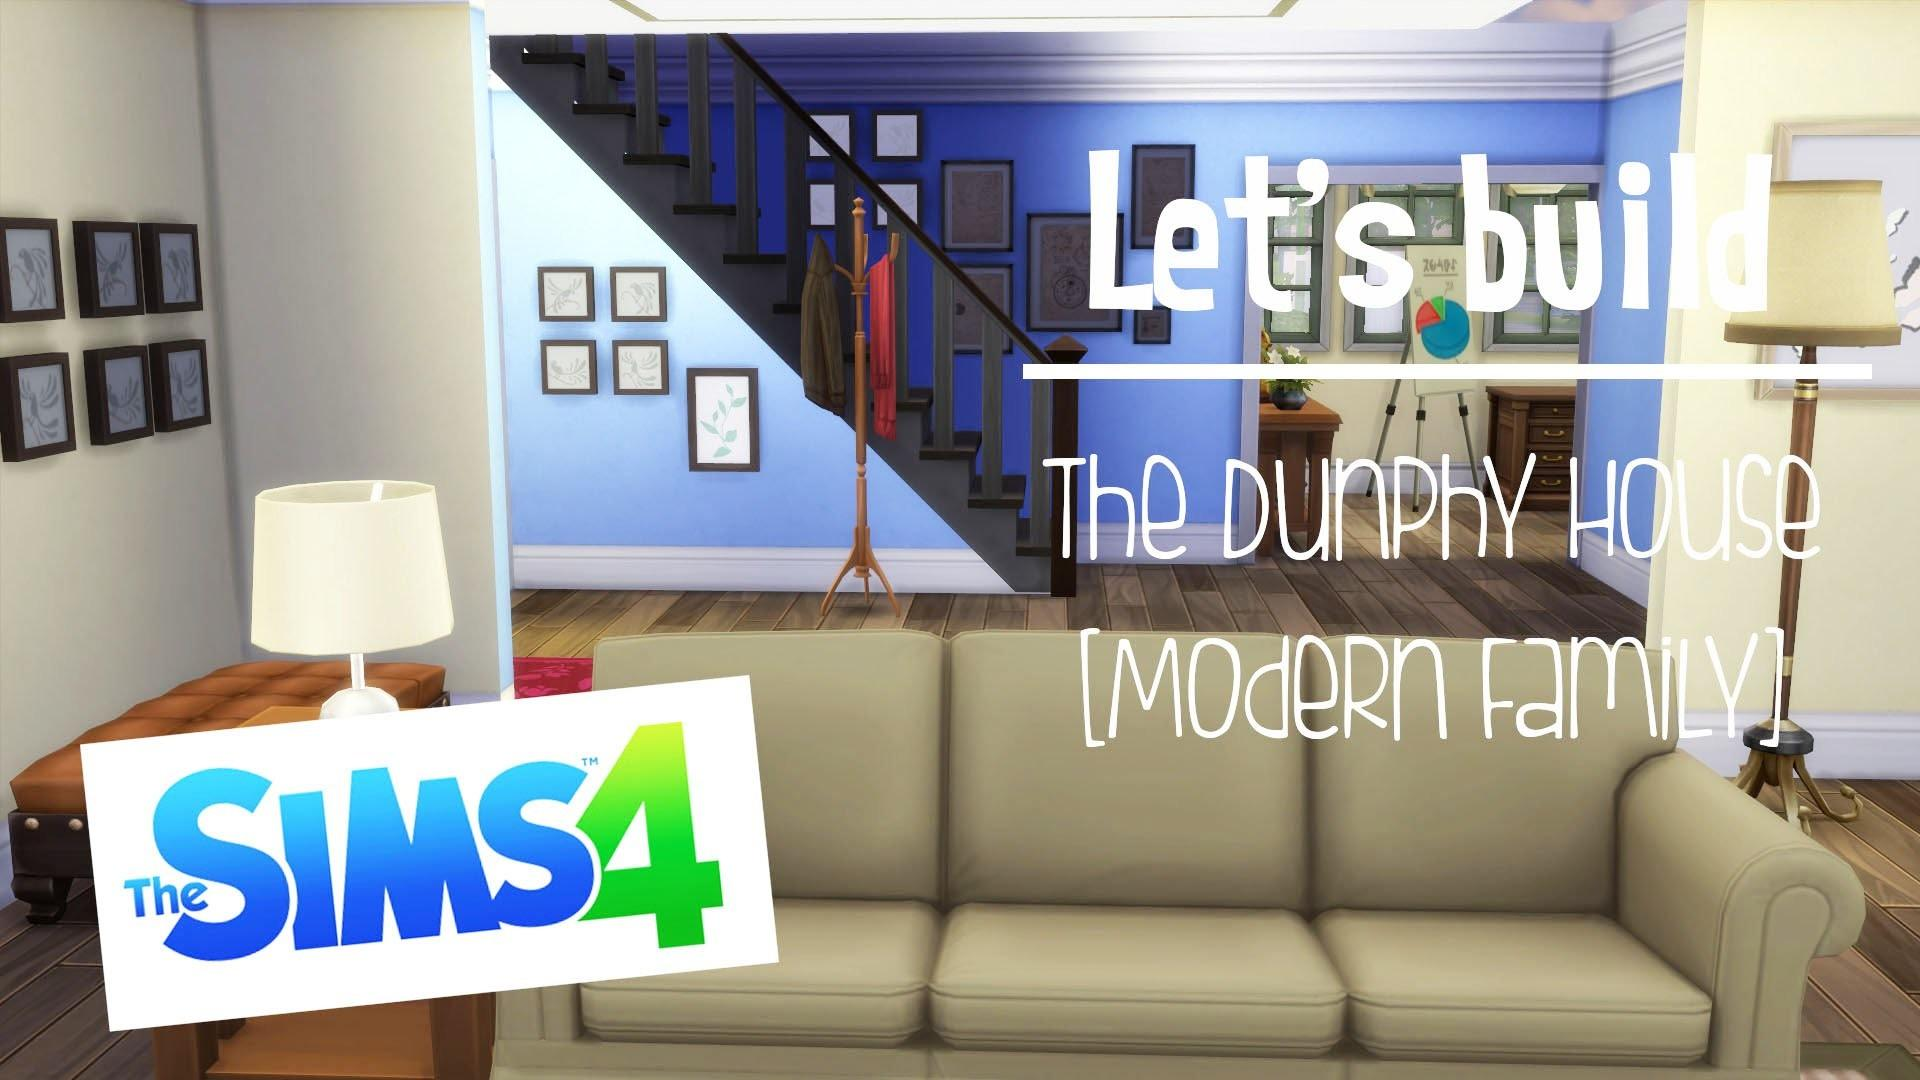 Let Build Dunphy House Modern Family